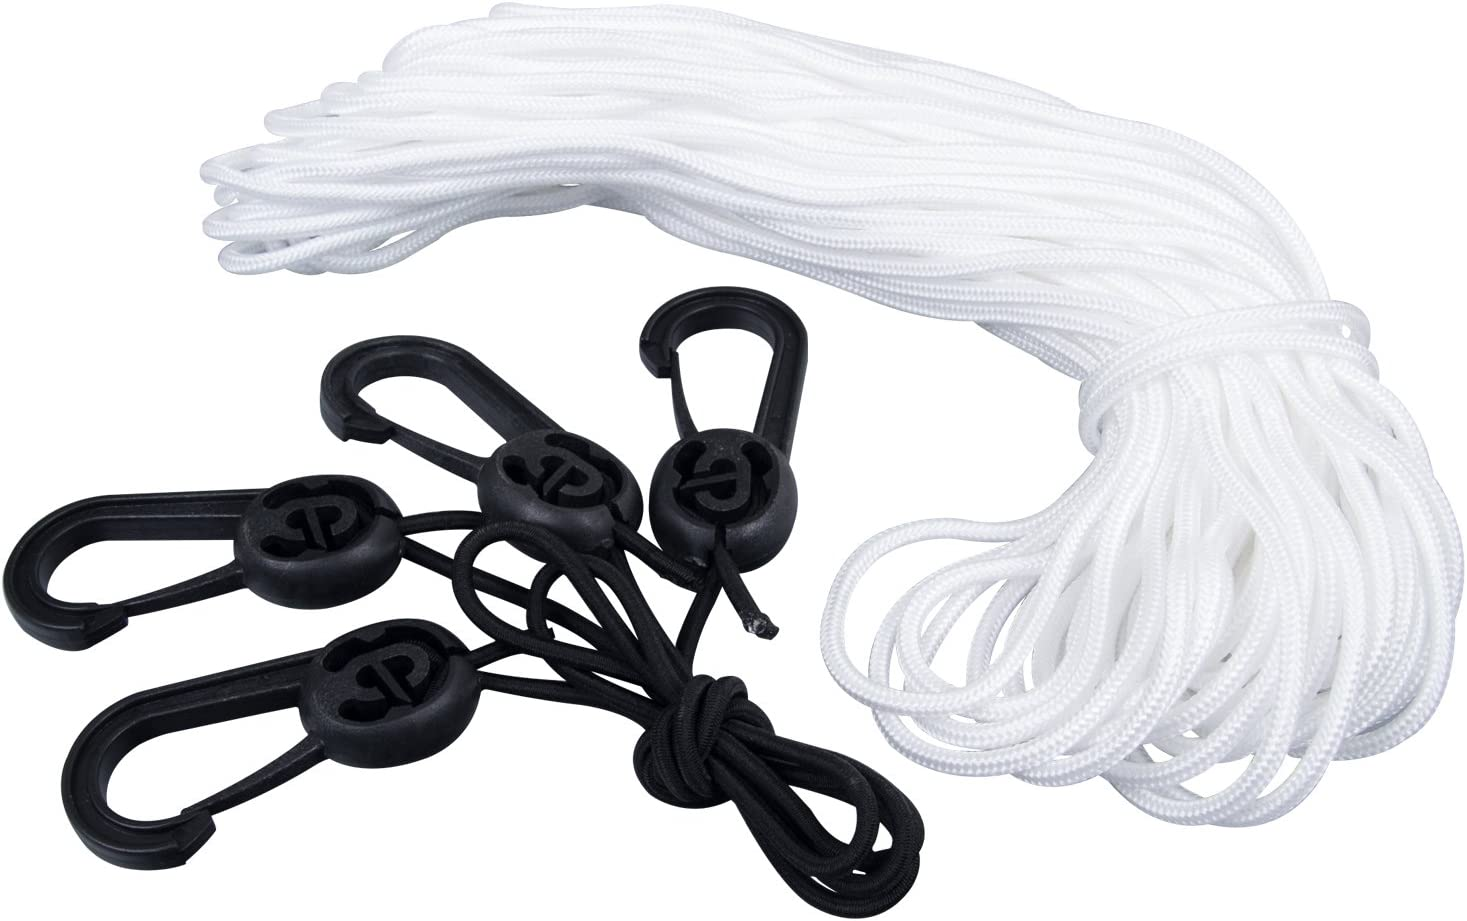 GOODSMANN Boat Cover Tie Down Kit Durable Tie Down Straps Rope /& Hook Accessory for 150D Series Boat Cover 9921-0221-01